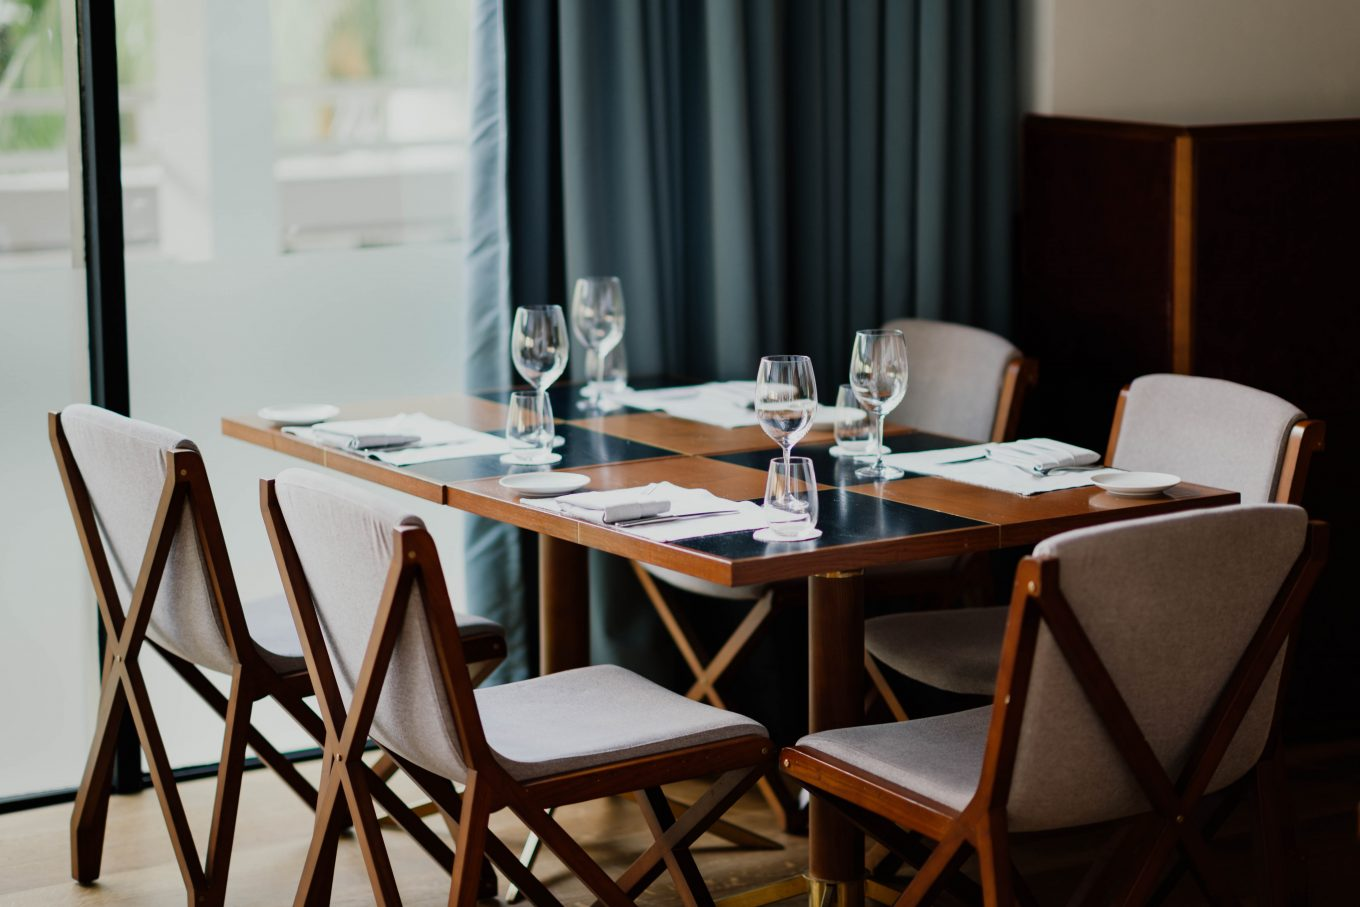 brown table with chairs